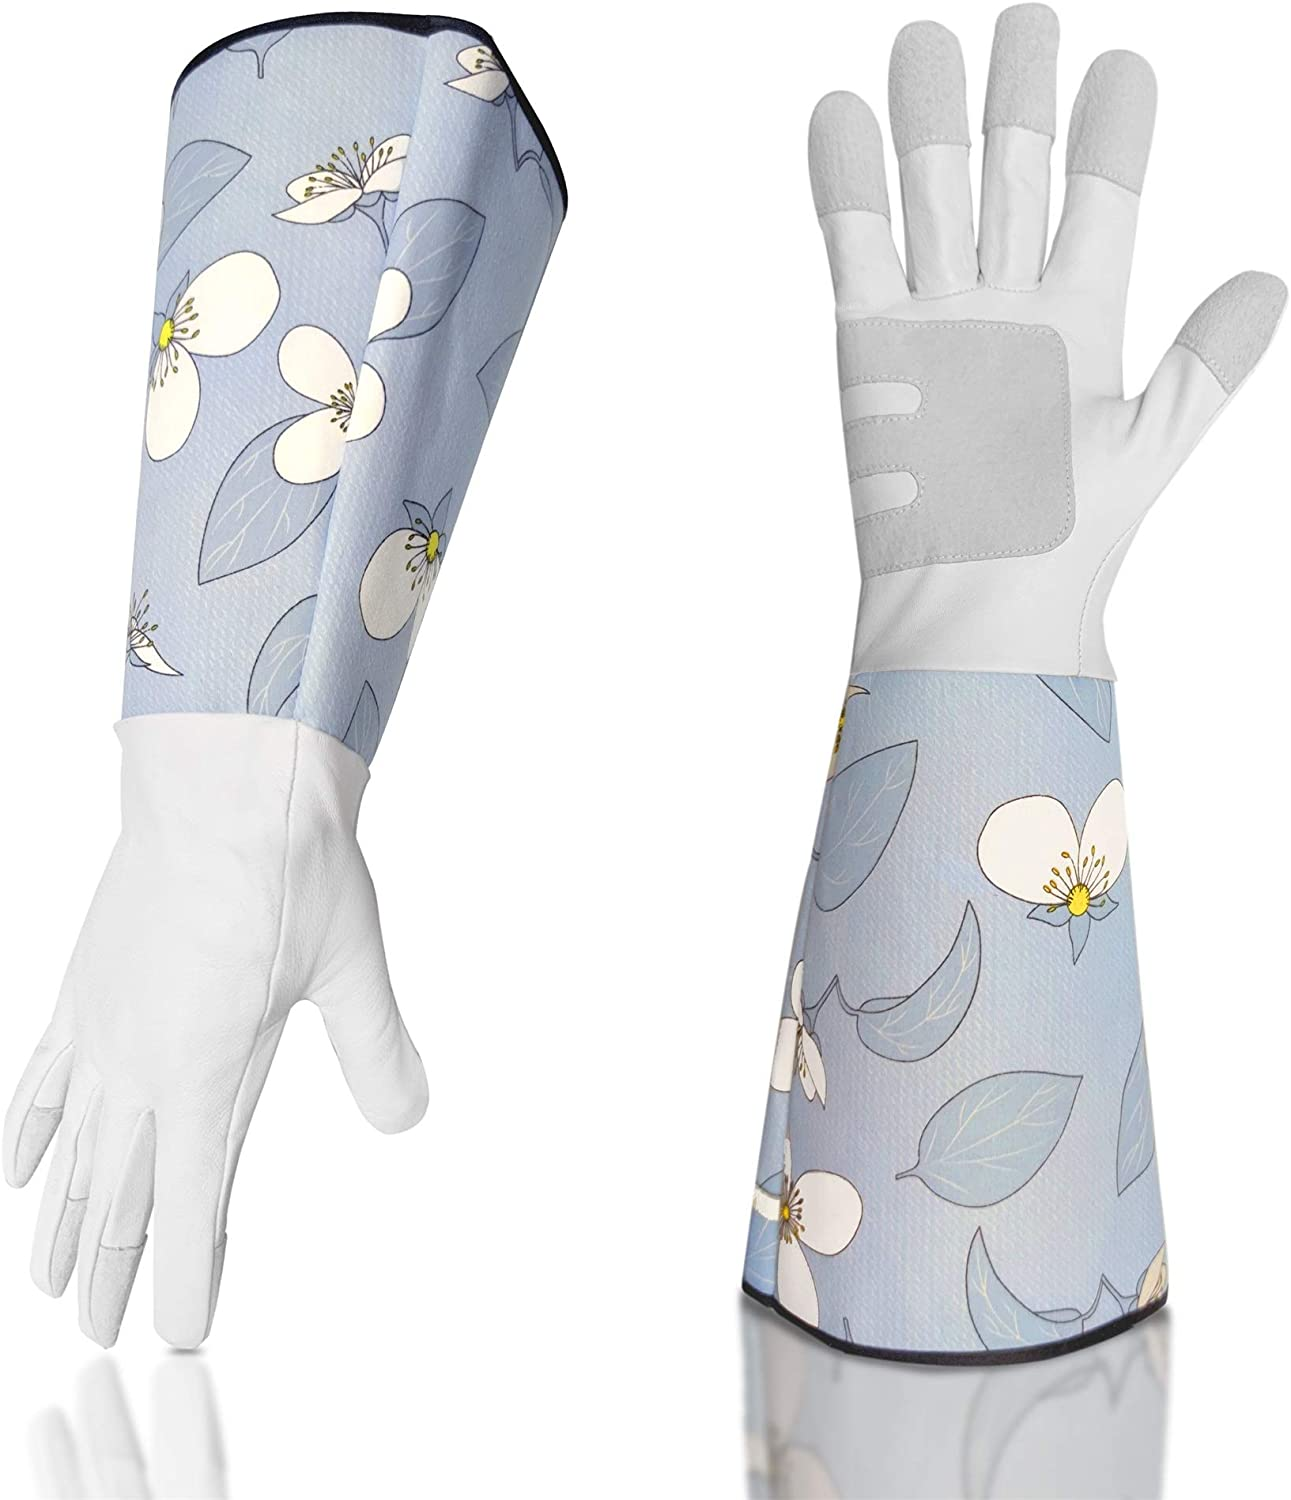 Leather-Gardening-Gloves for Women - Thorn Proof Rose Pruning Ladies Heavy Duty Gloves Goatskin Leather Gloves Thick Palm Gauntlet Garden Work Gloves with Forearm Protection -Blue